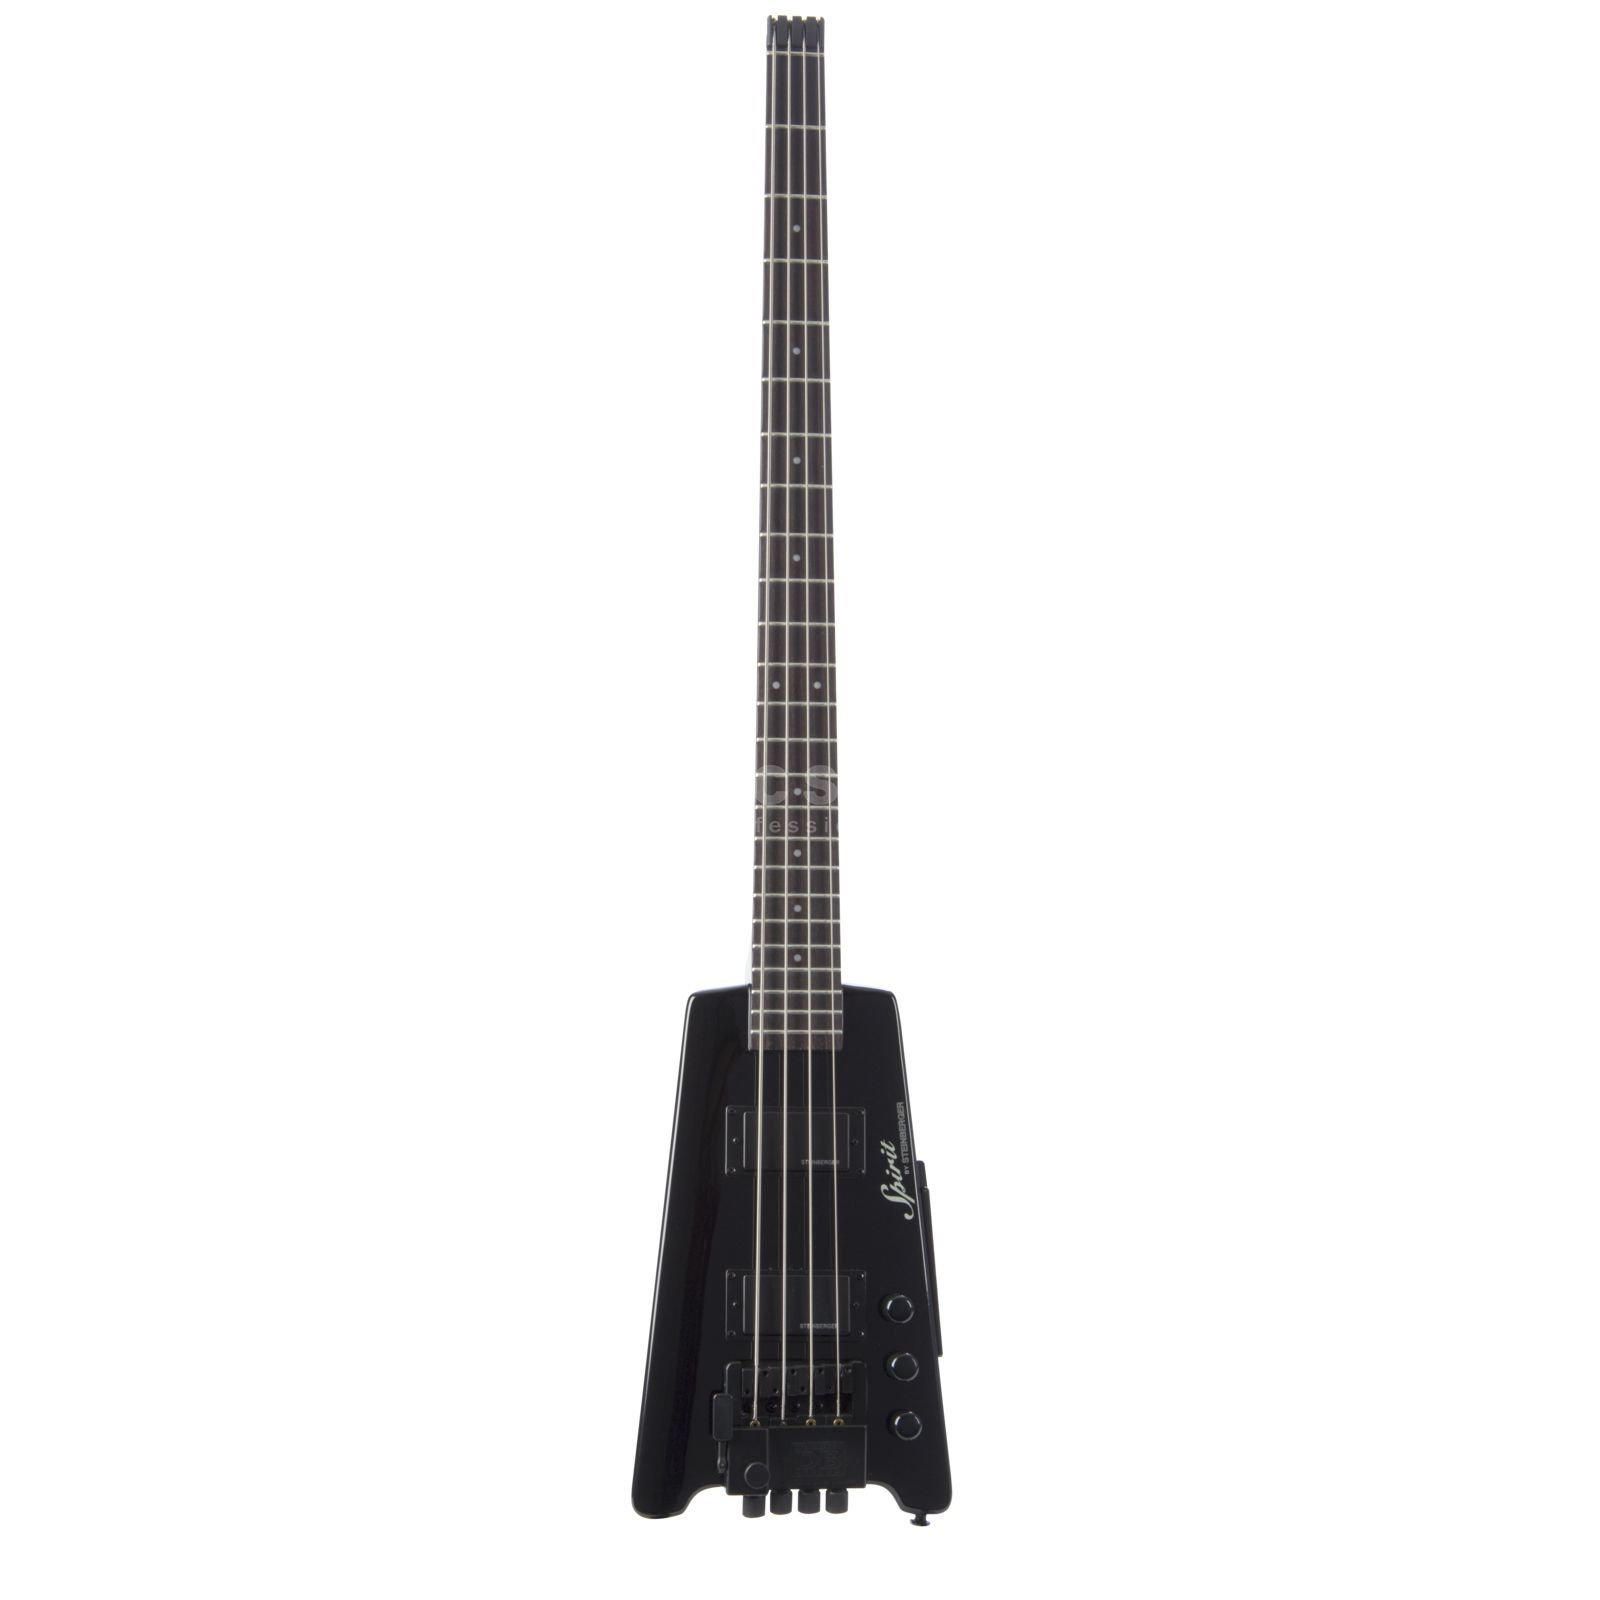 Steinberger XT-2DB Standard Bass BK Black, incl. Deluxe Gig bag Изображение товара